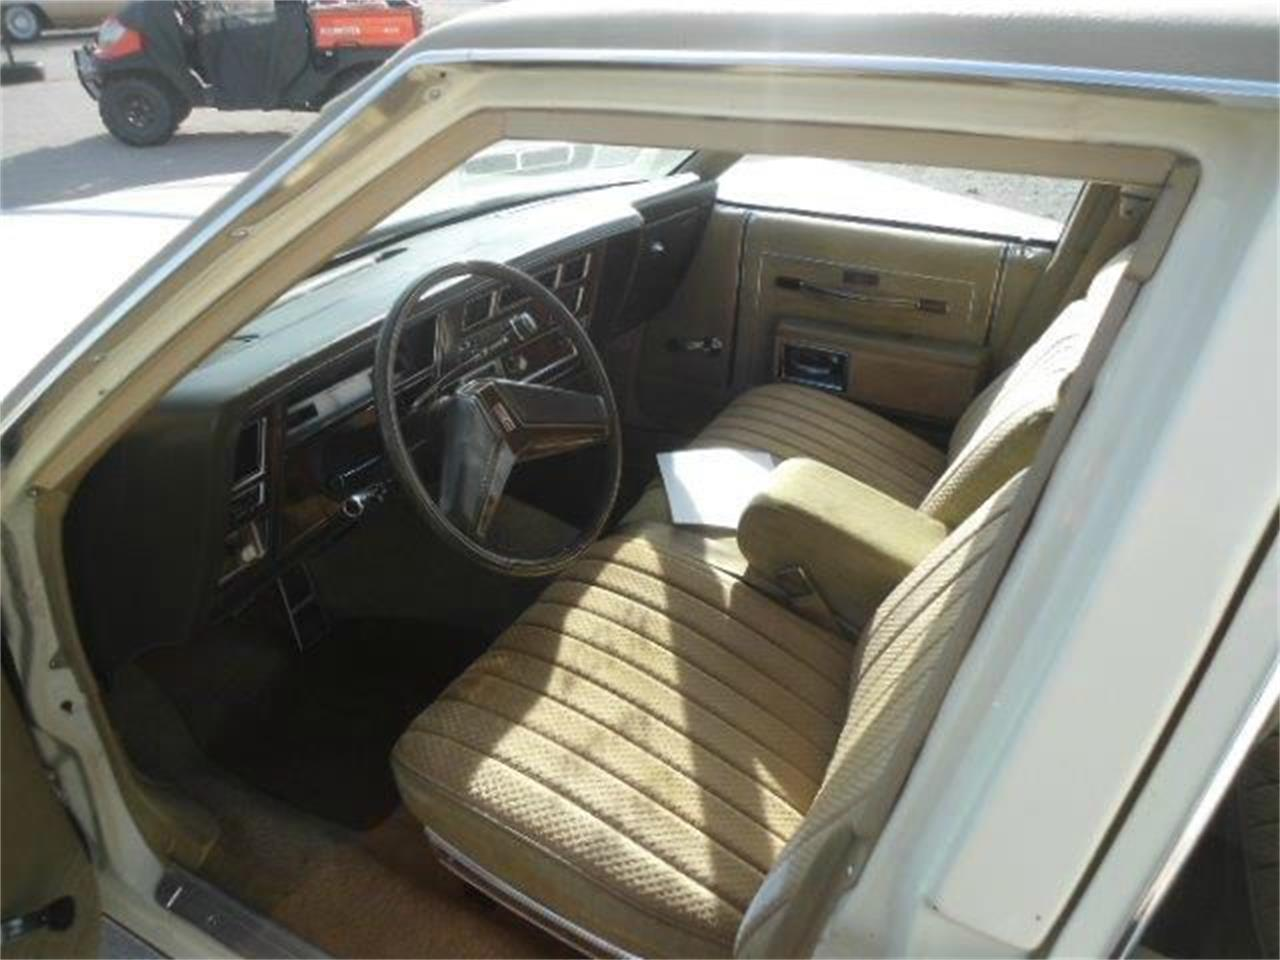 1981 Oldsmobile Delta 88 for sale in Staunton, IL – photo 3